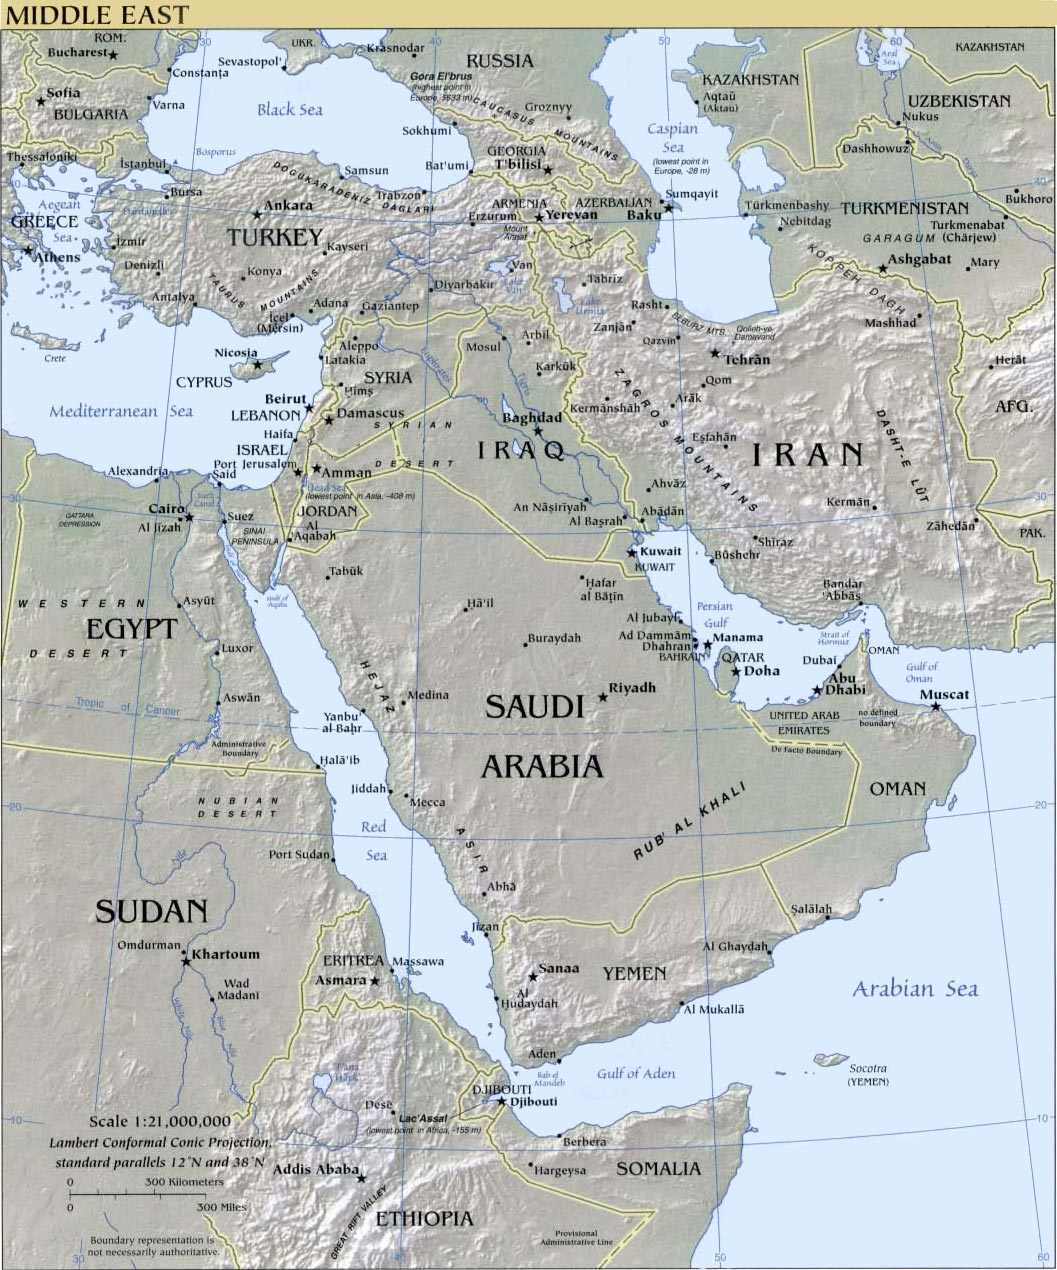 Israel Maps - Isreal map